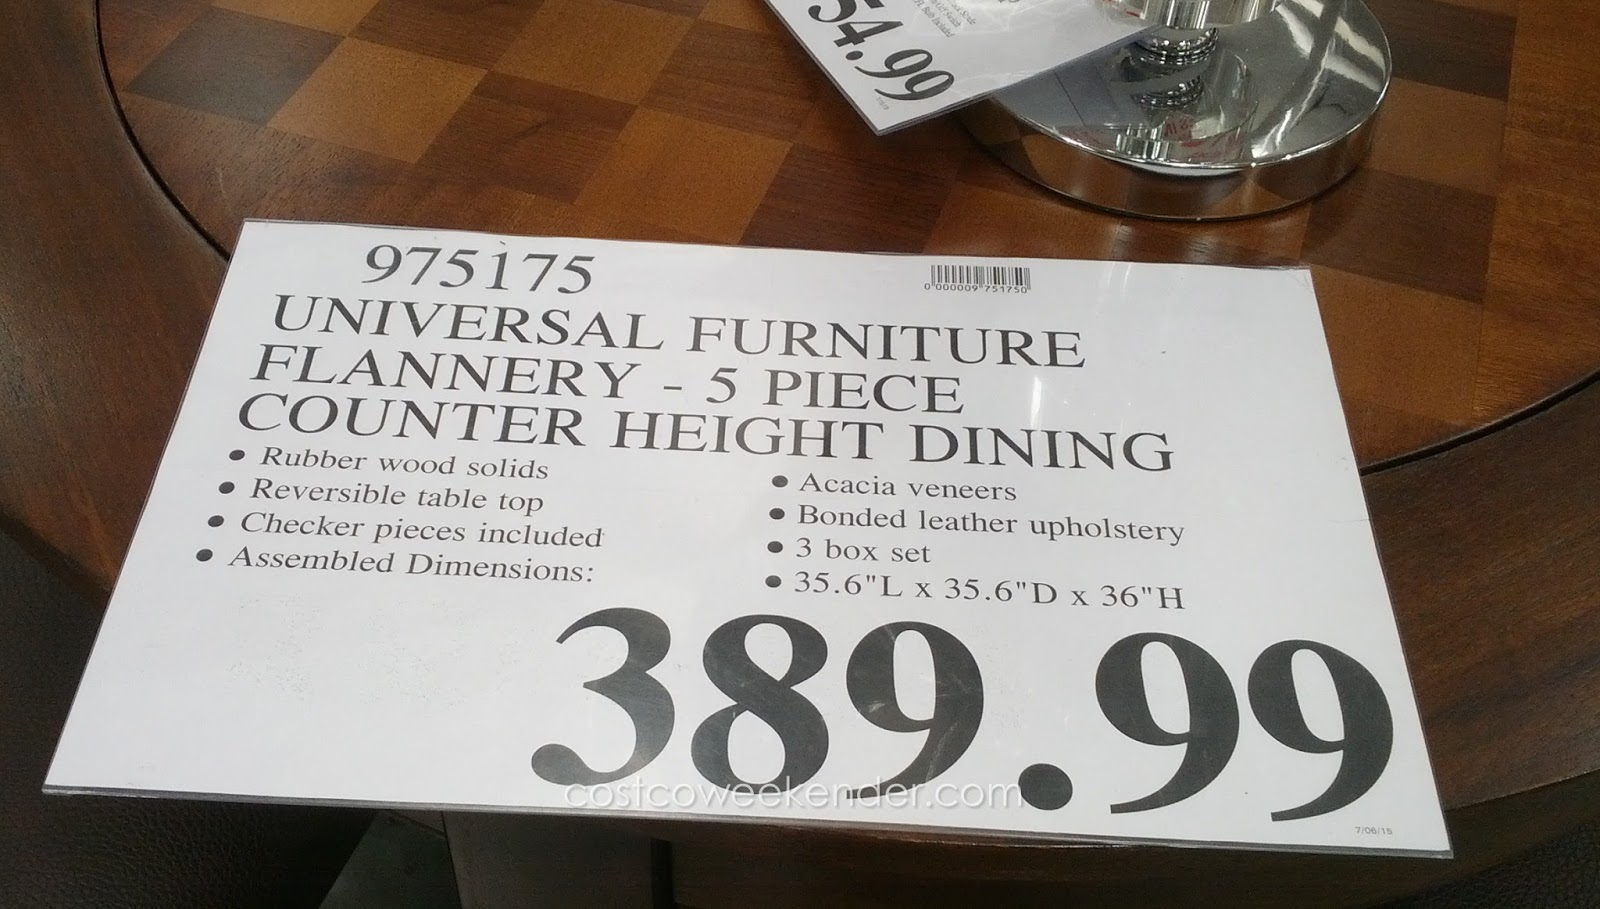 Charming Deal For The Universal Furniture Broadmoore Flannery Counter Height Dining  Set At Costco